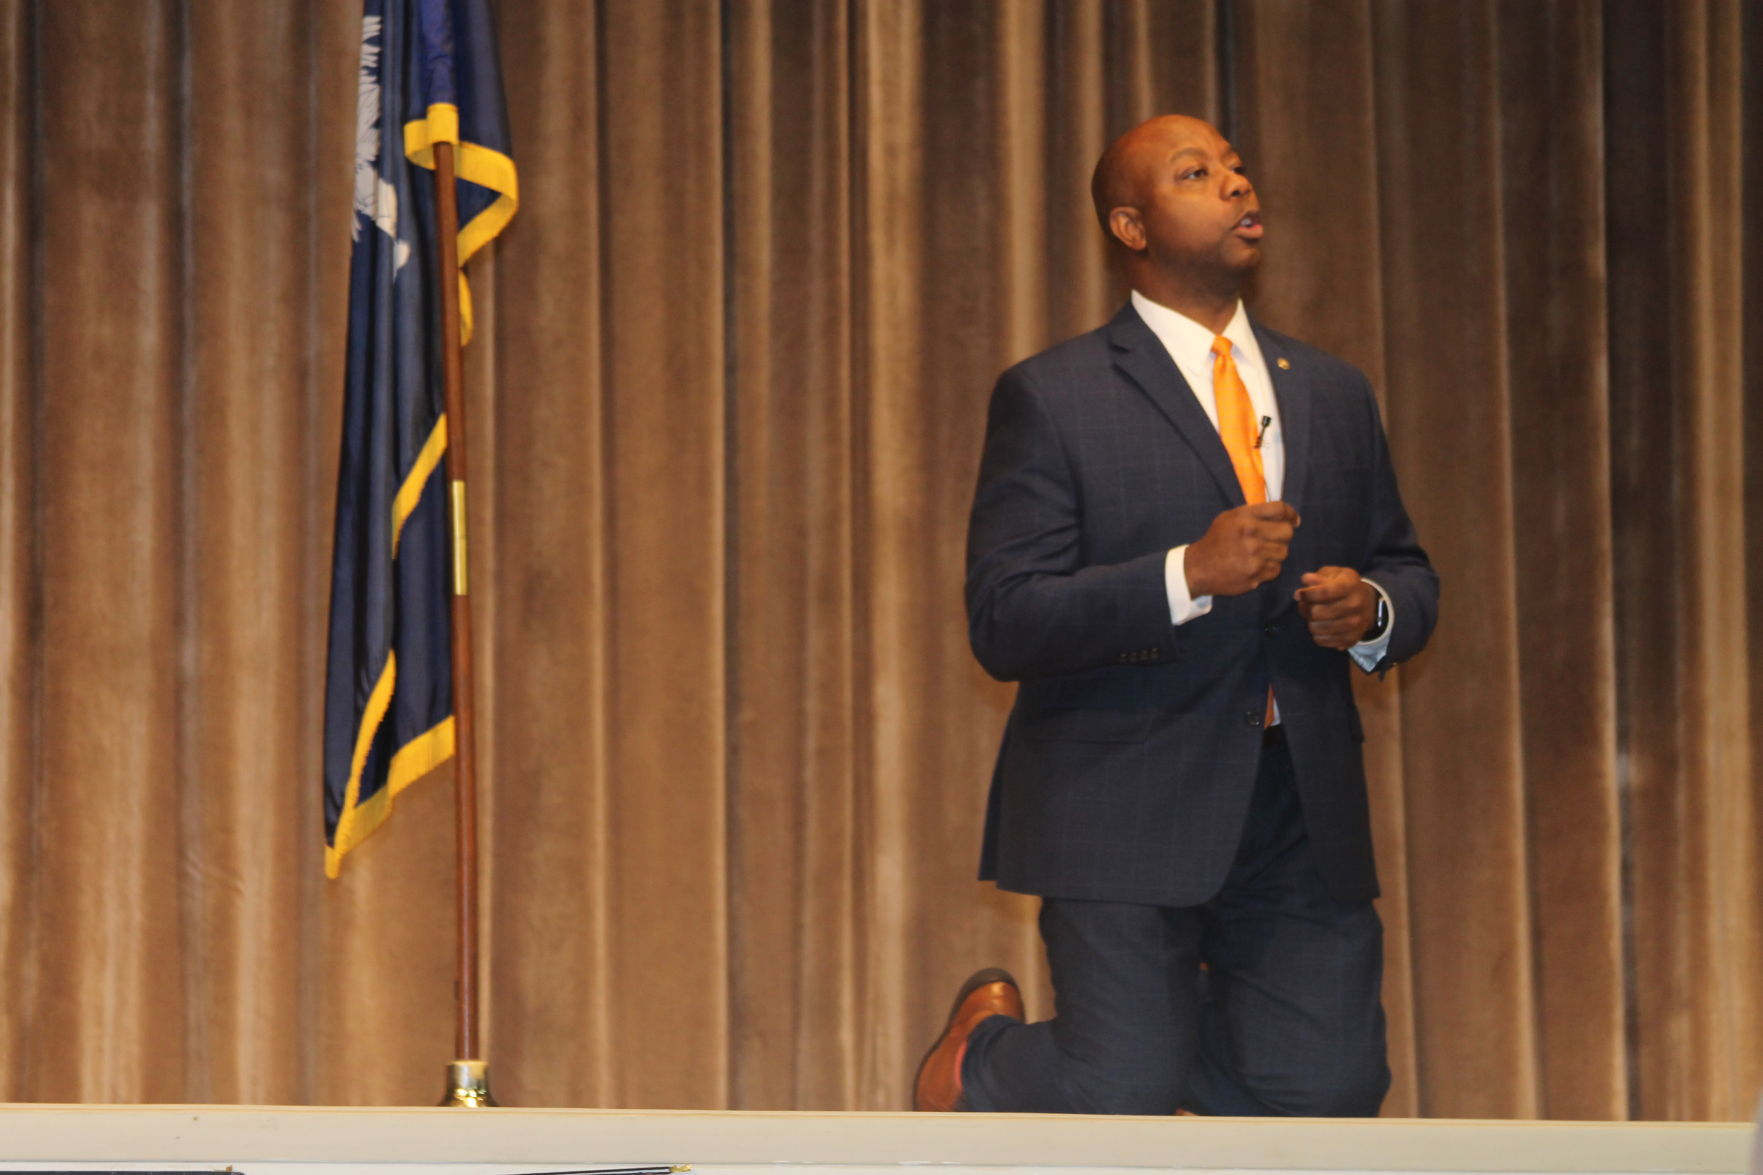 Tim Scott R South Carolina opened his remarks